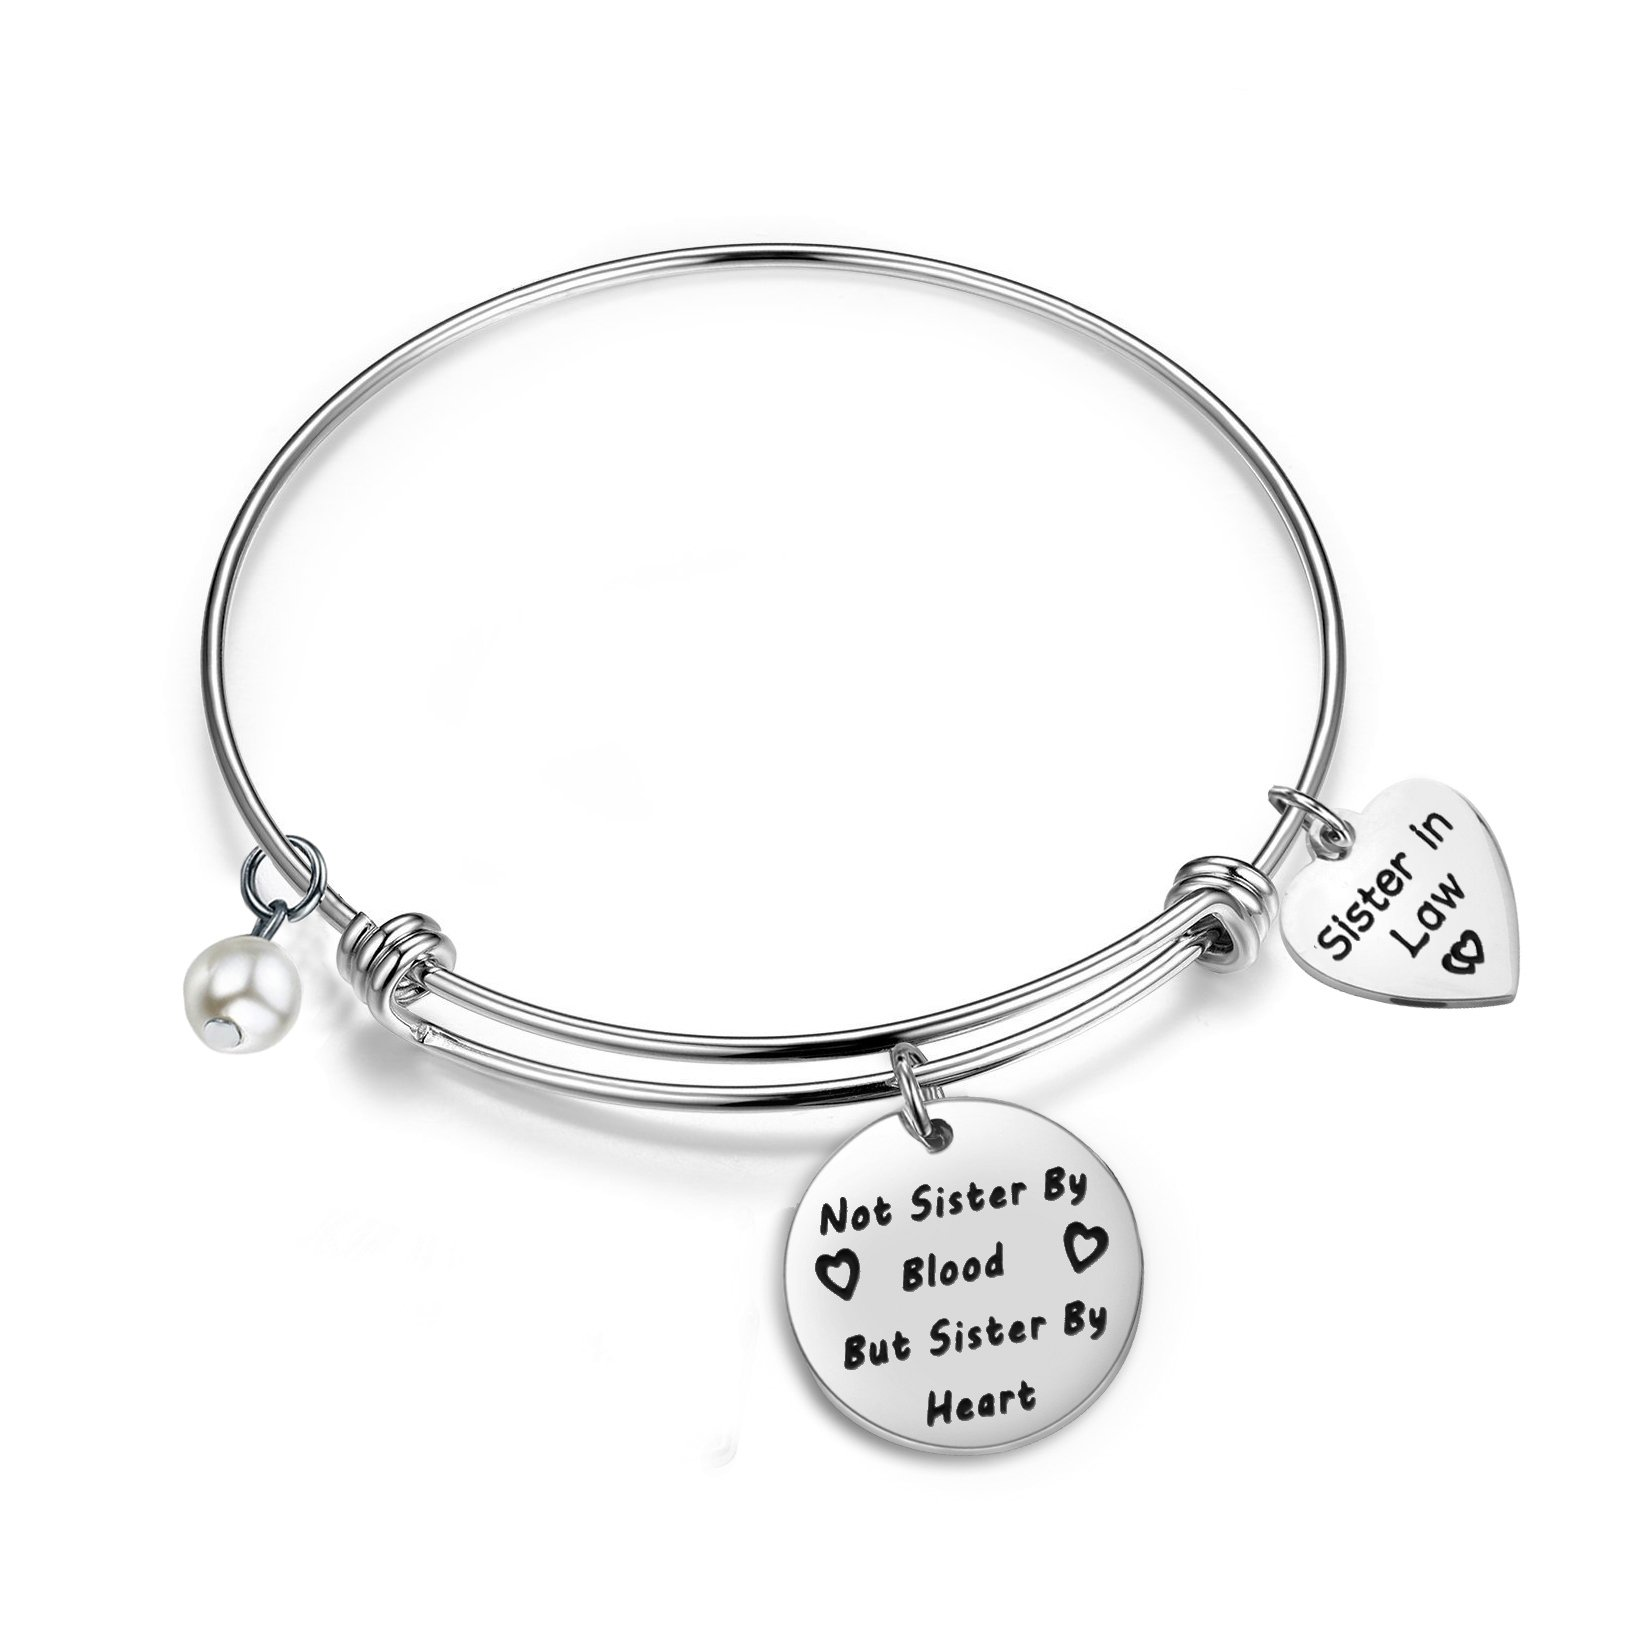 Gzrlyf Sister In Law Bracelet Not Sister By Blood But Sister By Heart Charm Bangle Bracelet Sister Friend Gift … (Sister in law bracelet)